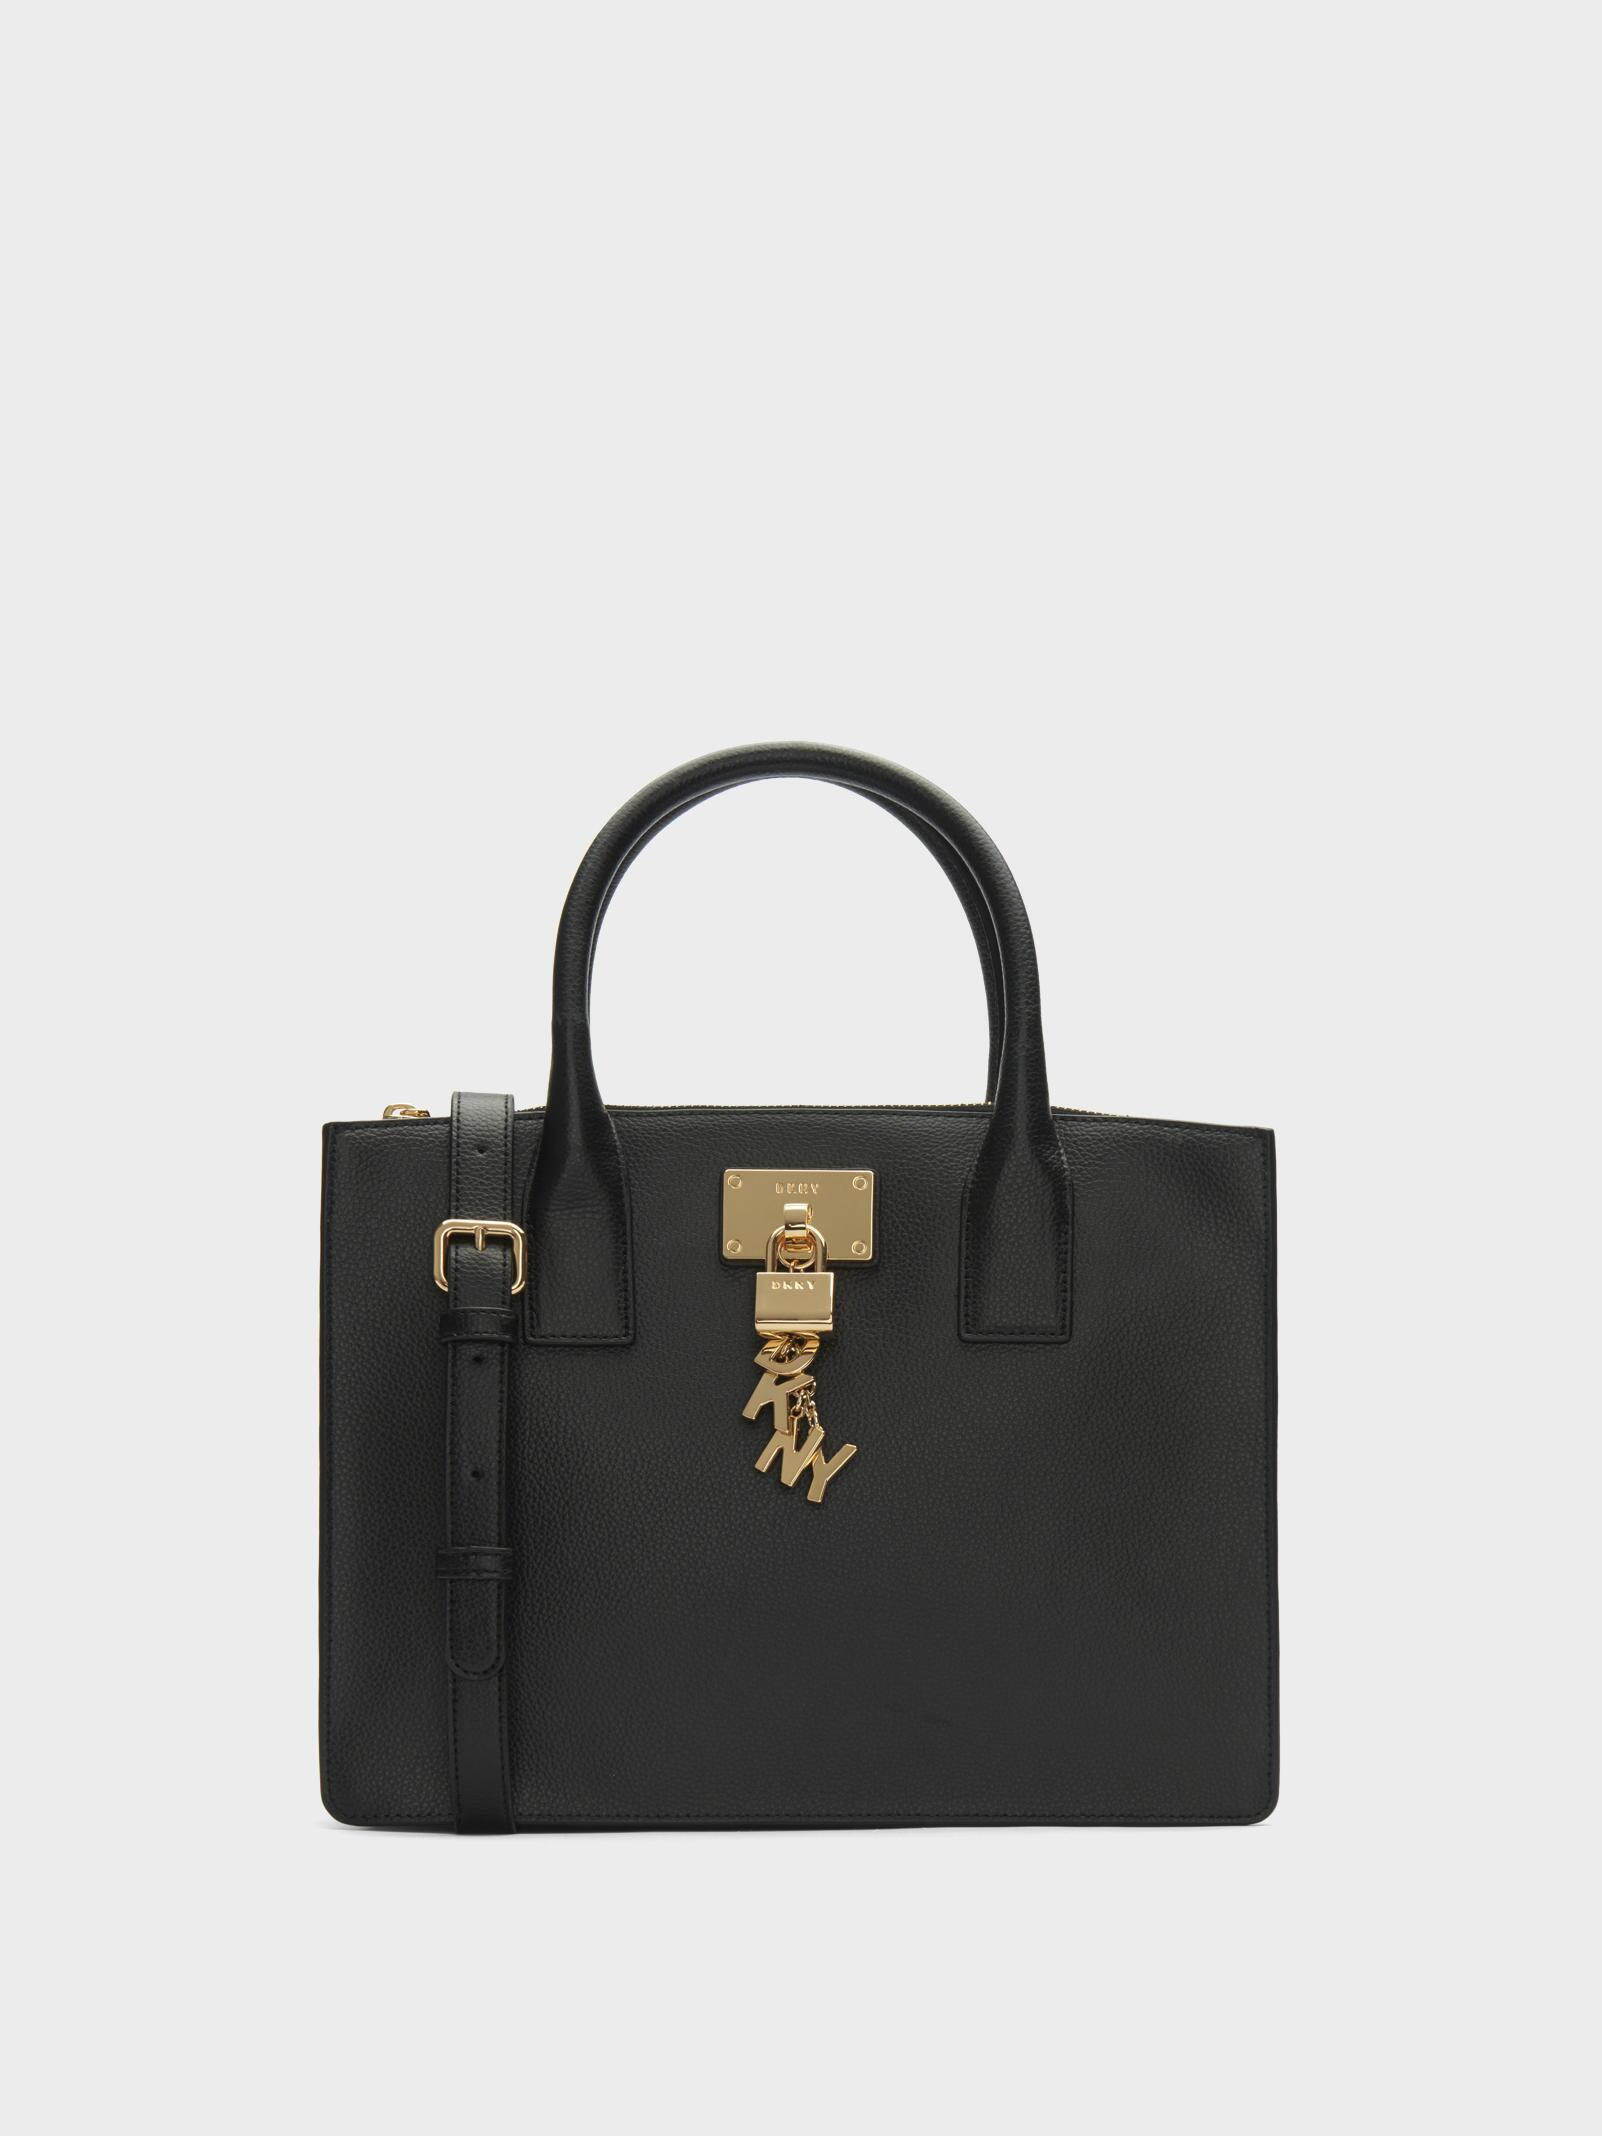 Tote - Elissa SM Tote Black/Gold - black - Tote for ladies DKNY